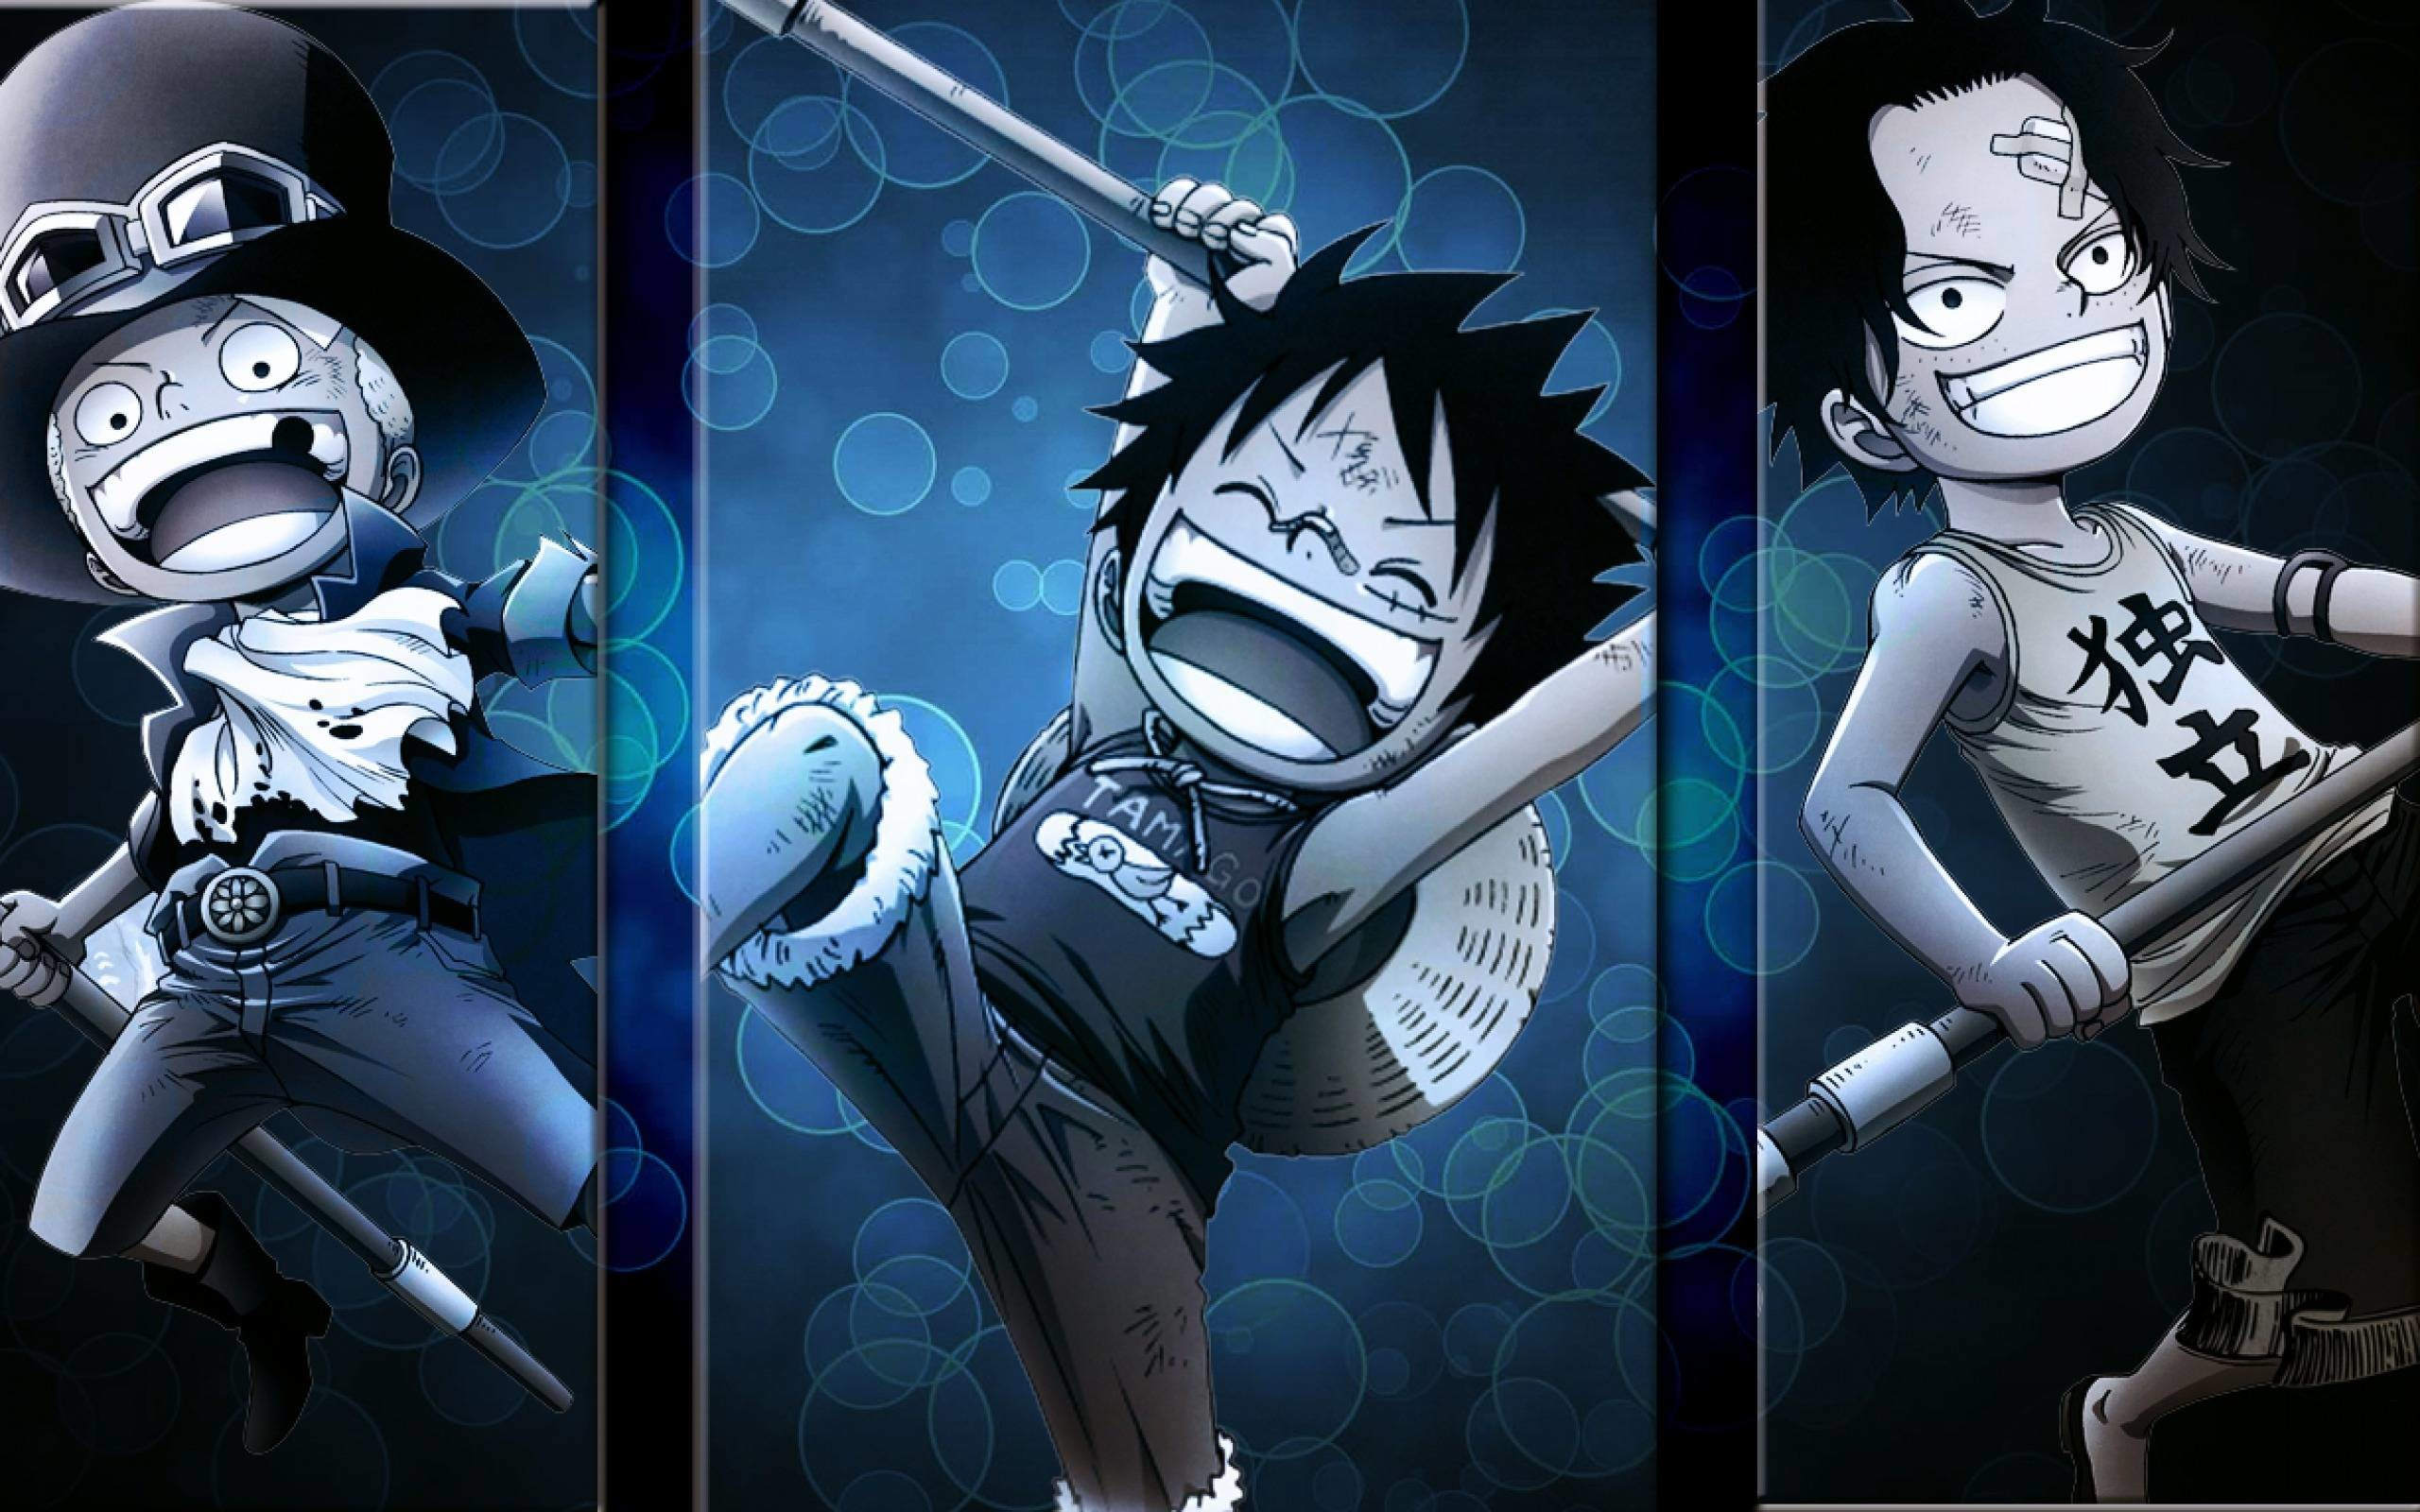 One Piece Luffy And Ace Wallpaper Is Cool Wallpapers - One Piece Luffy Ace Sabo Wallpaper Hd - HD Wallpaper